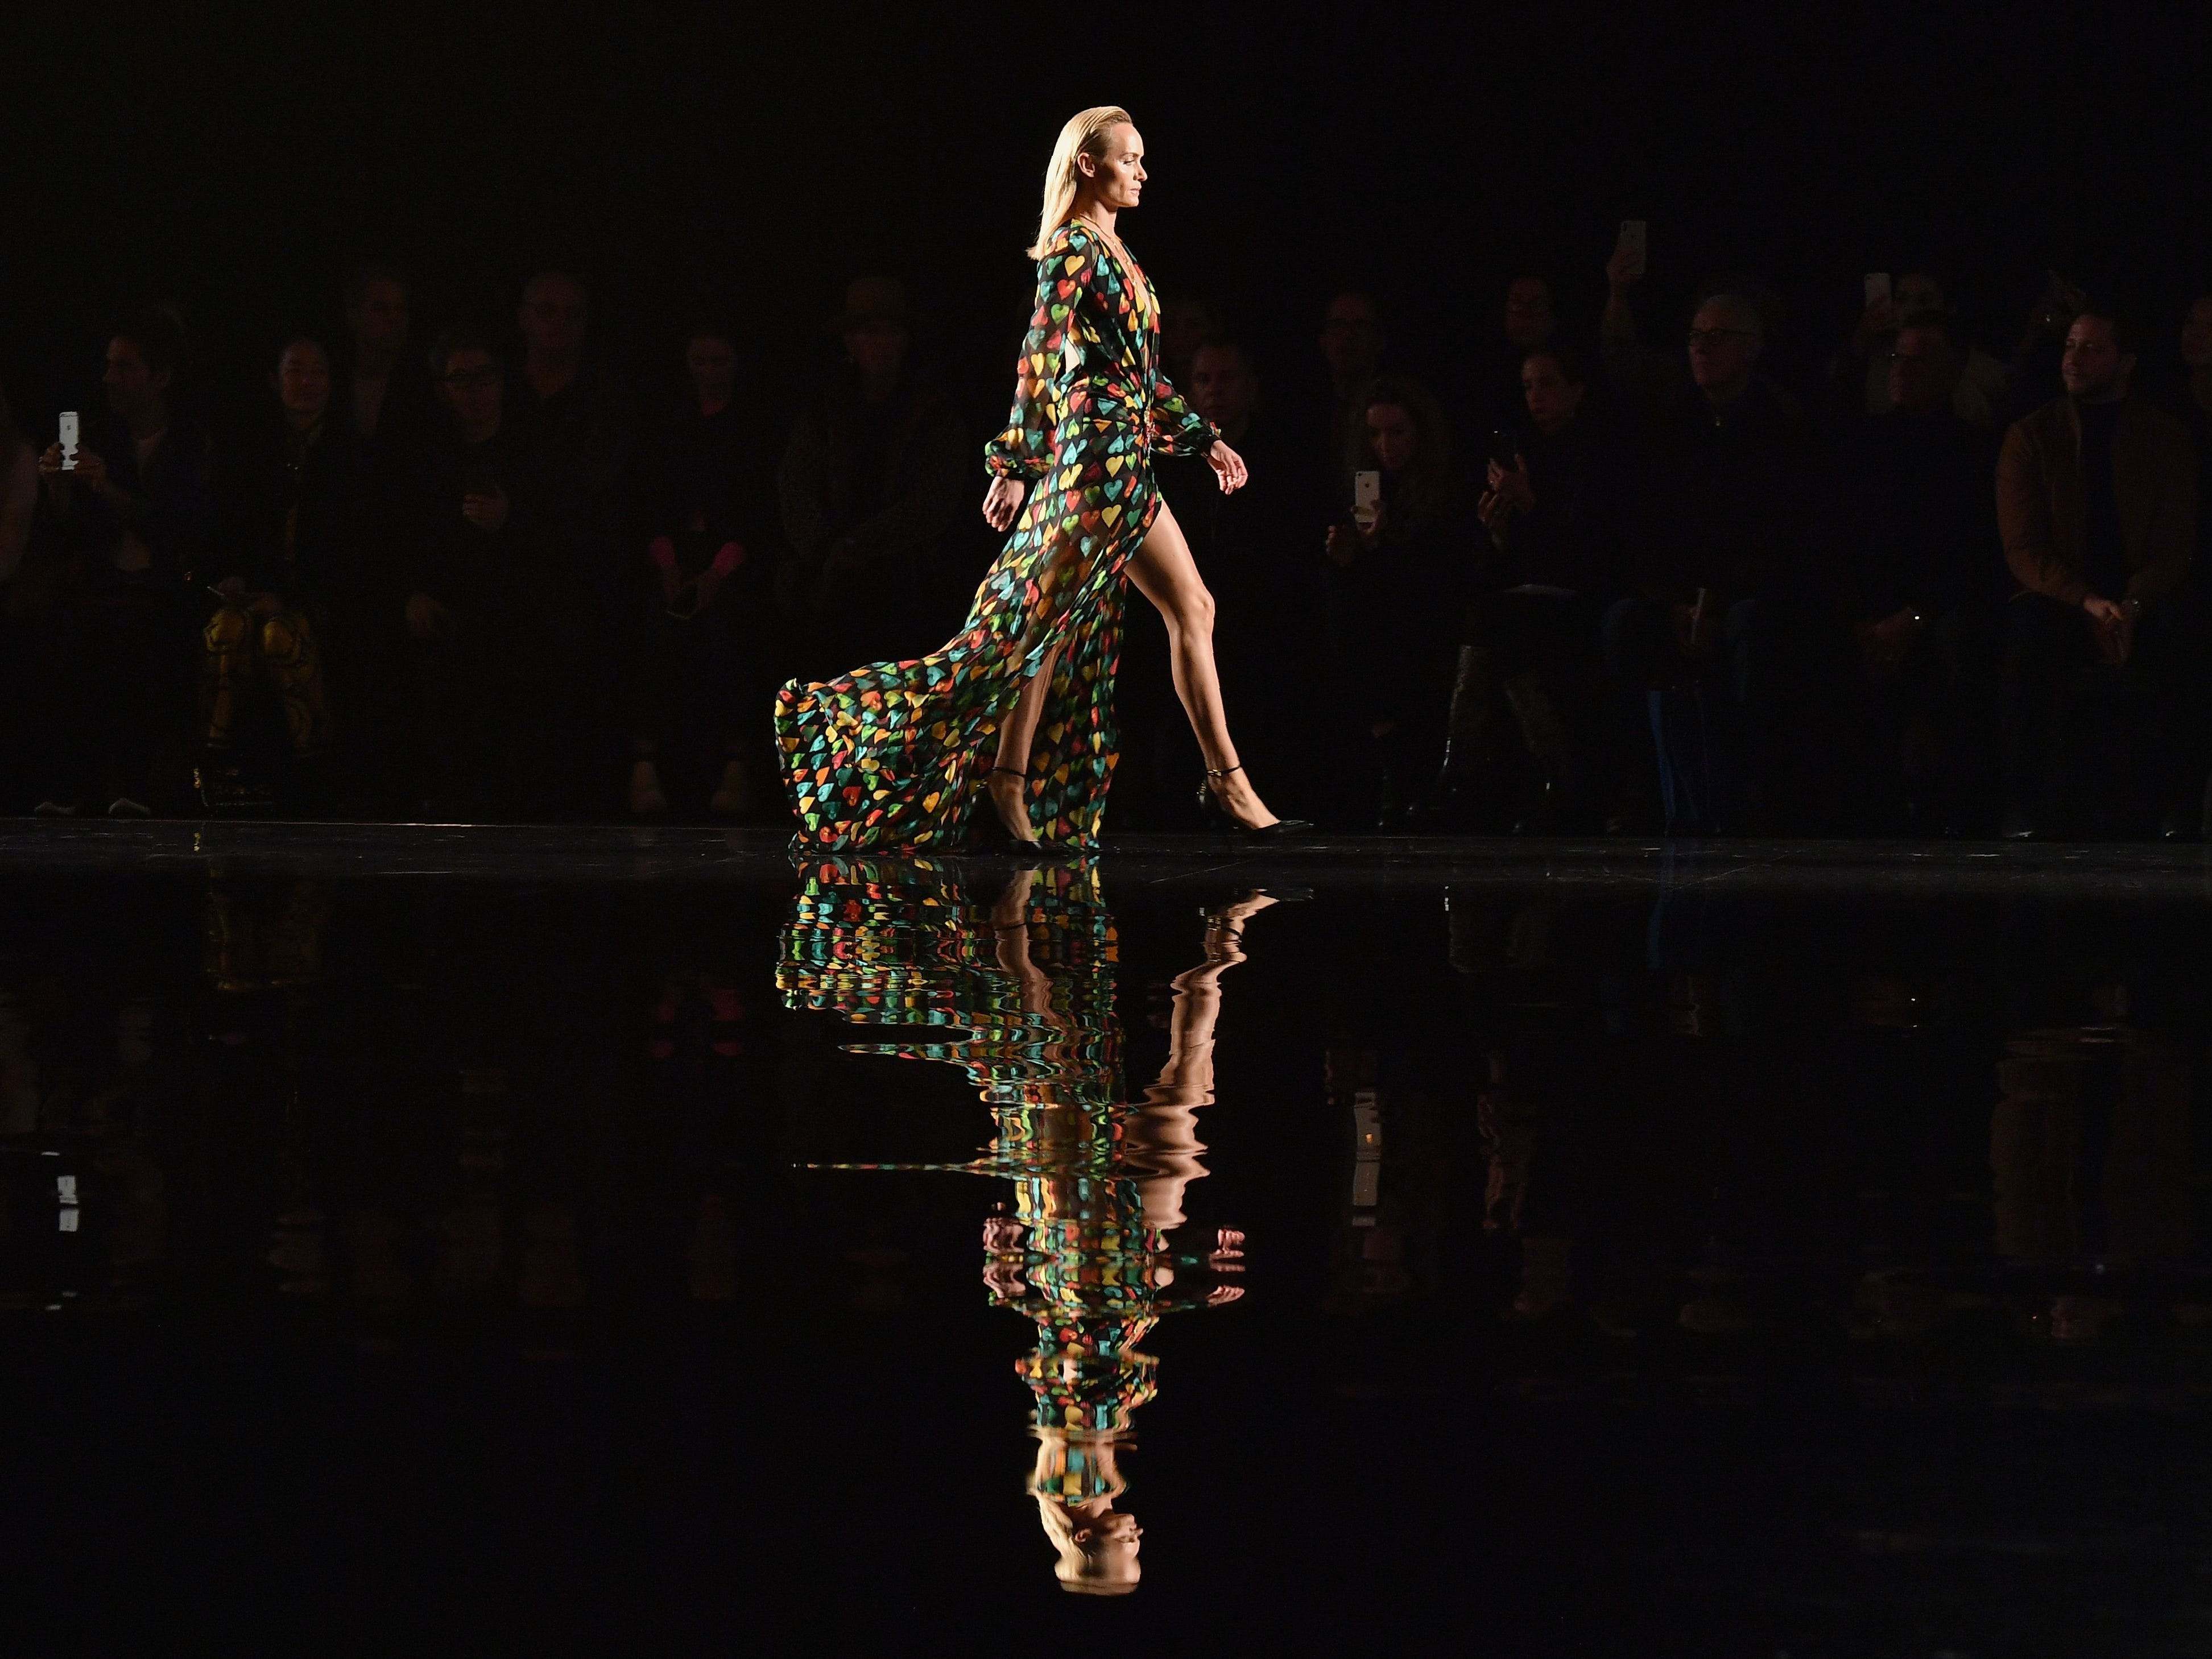 American model Amber Valletta walks the runway at the Versace Pre-Fall 2019 Runway Show on Sunday, Dec. 2, 2018 in New York City.